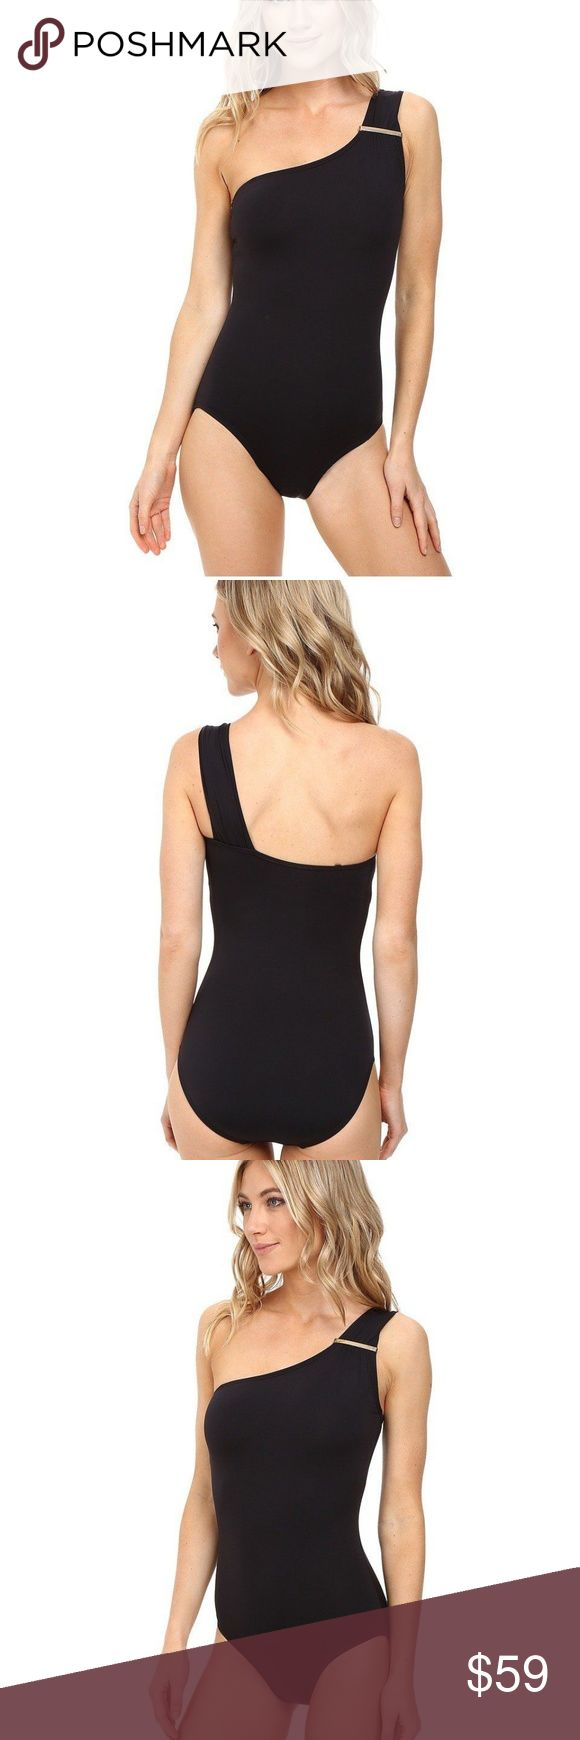 Michael Kors Womens Villa Del Mar Michael Kors Womens Villa Del Mar Logo Bar One-Shoulder One-Piece Size 6  MICHAEL Michael Kors Women's Swimwear Size Chart Dive into the deep blue waters with this alluring swimwear. One-piece swimsuit in a bold solid. One- shoulder design with brand-engraved hardware. Removable contour pads provide support and shape. Detachable strap at right. Moderate rear coverage. 85% nylon, 15% spandex.Cups: 100% polyurethane.Lining: 92% polyester, 8% spandex. Michael…